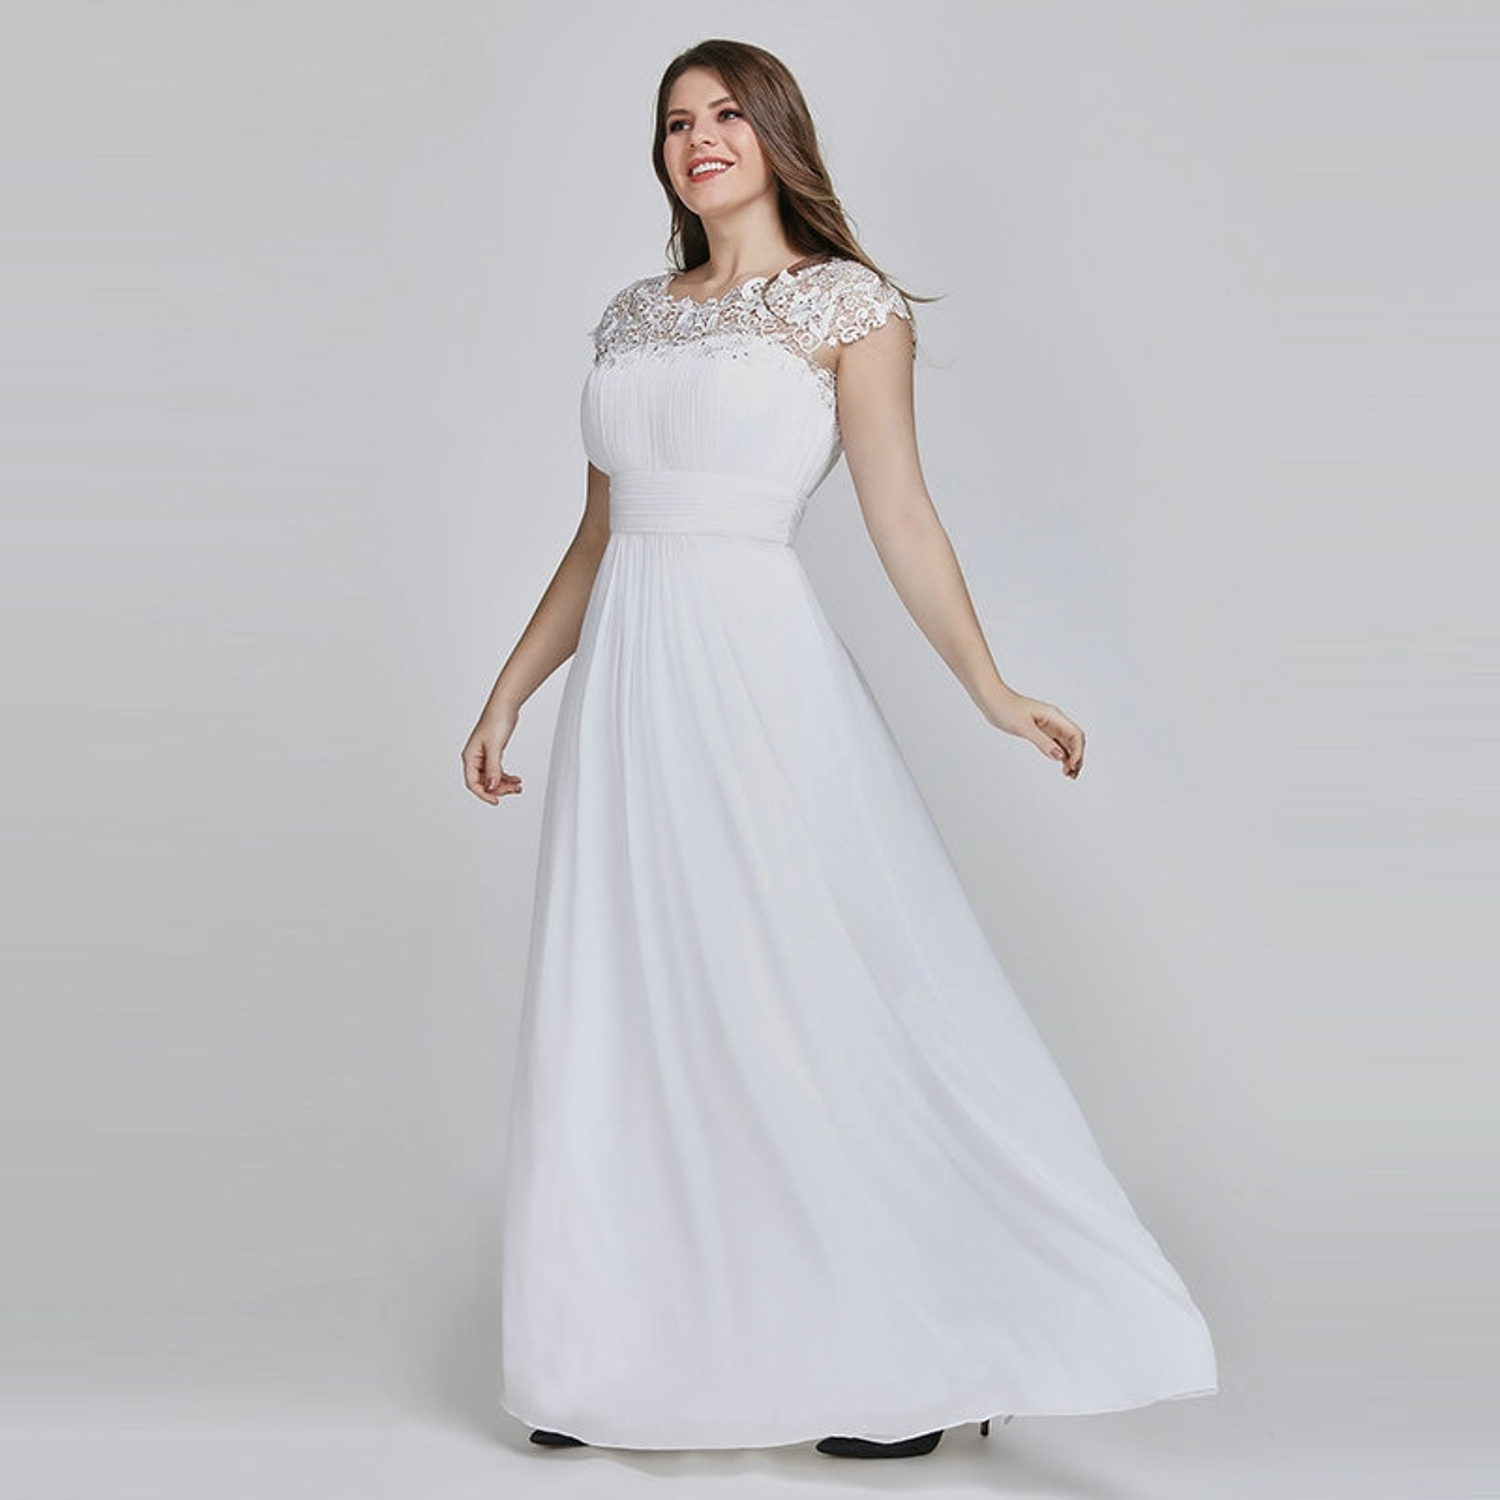 Bateau neck wedding dress